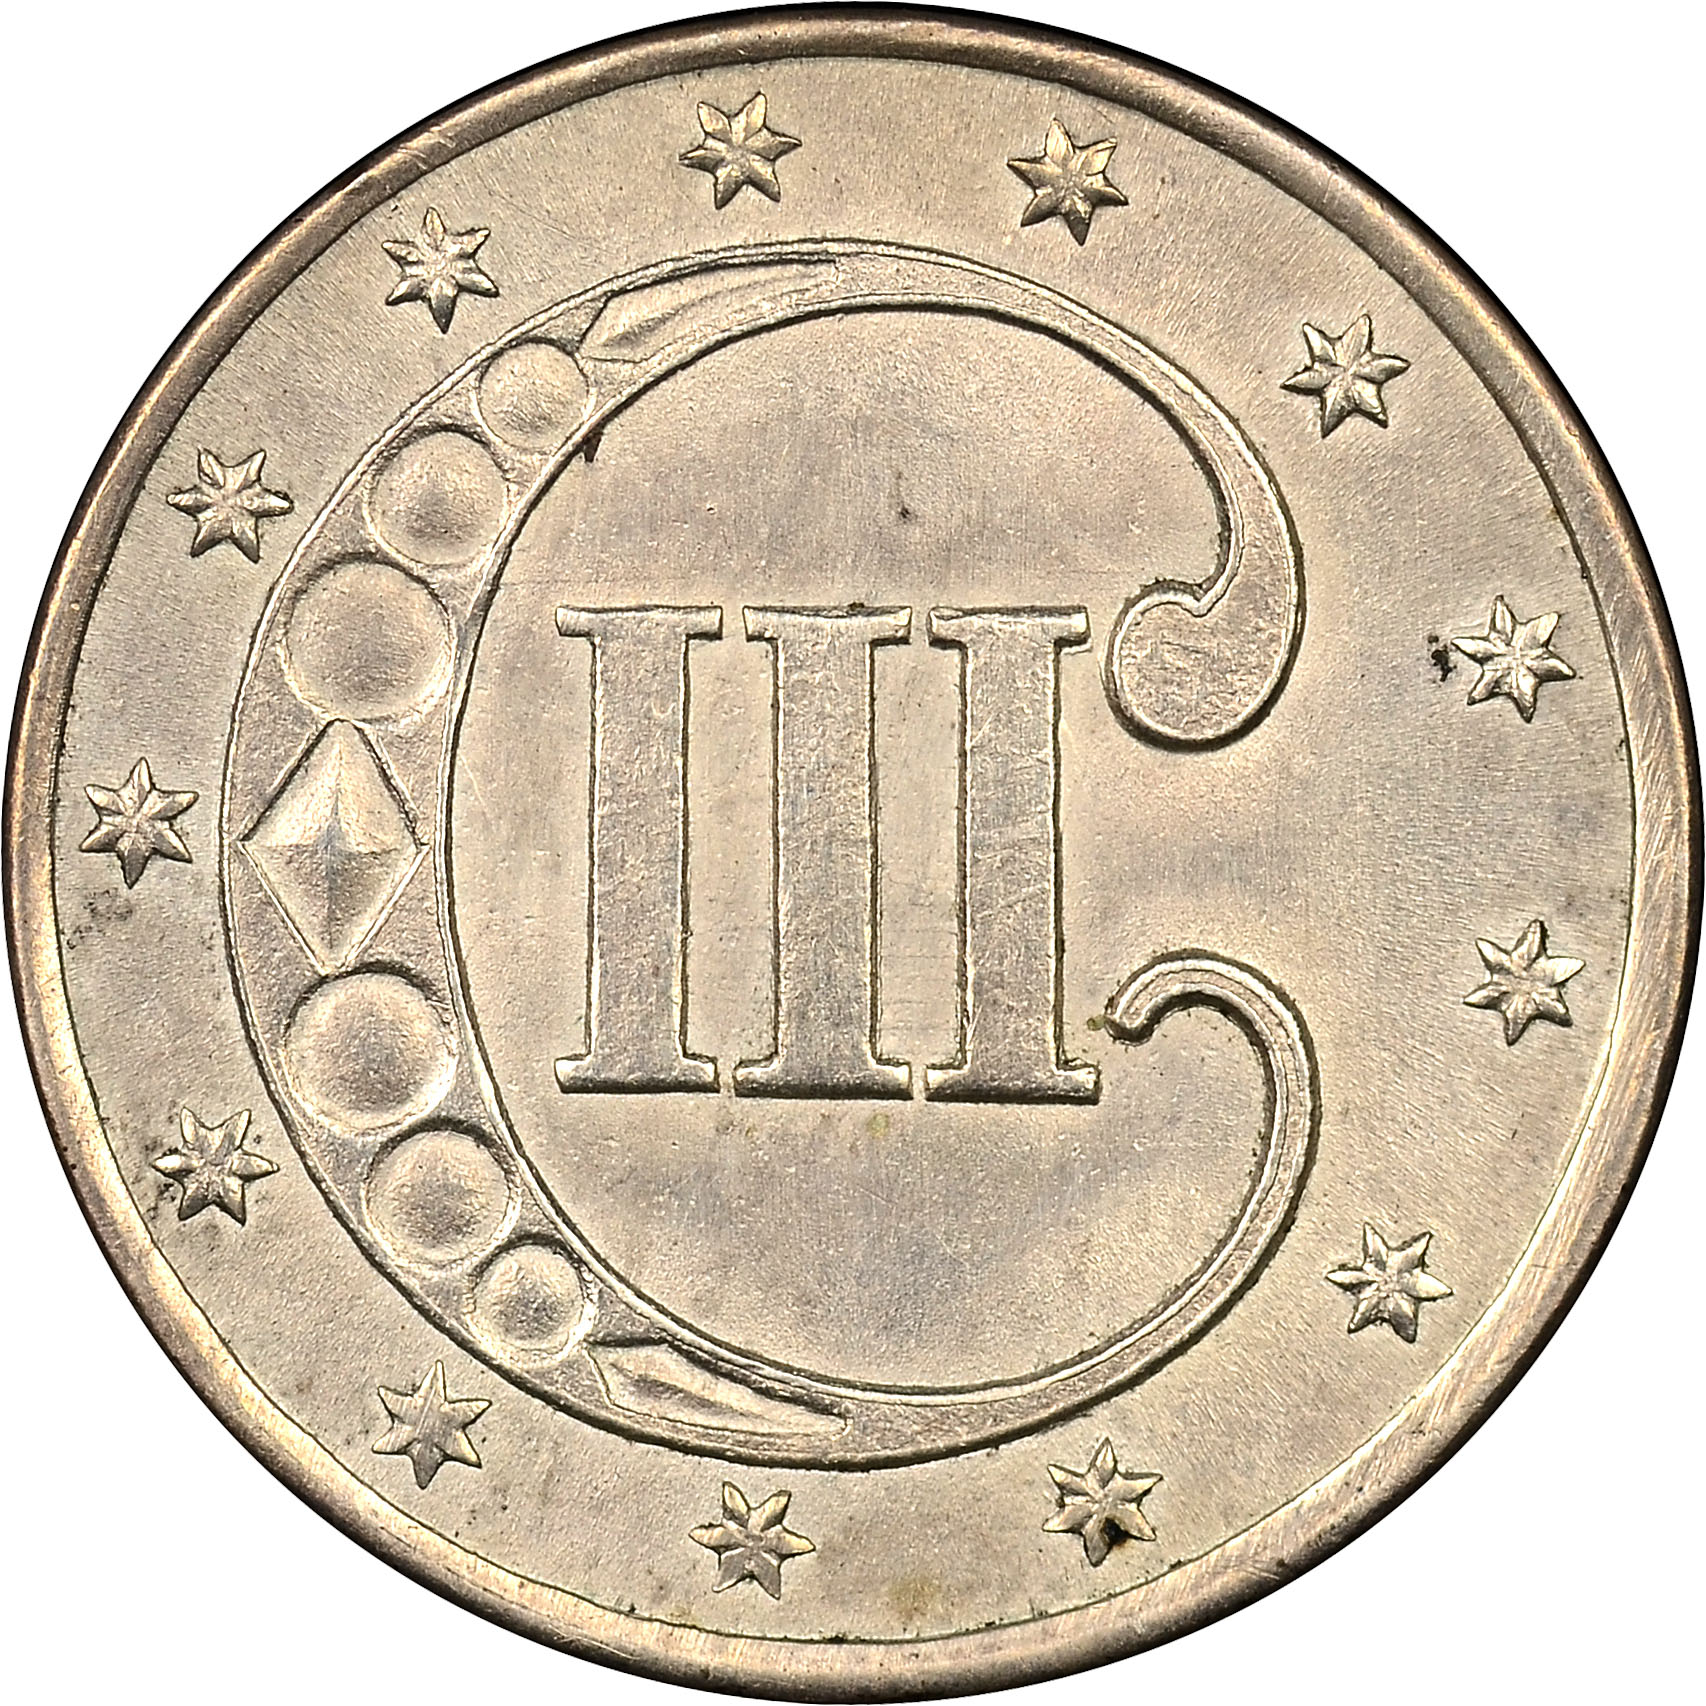 1853 3 cent coin